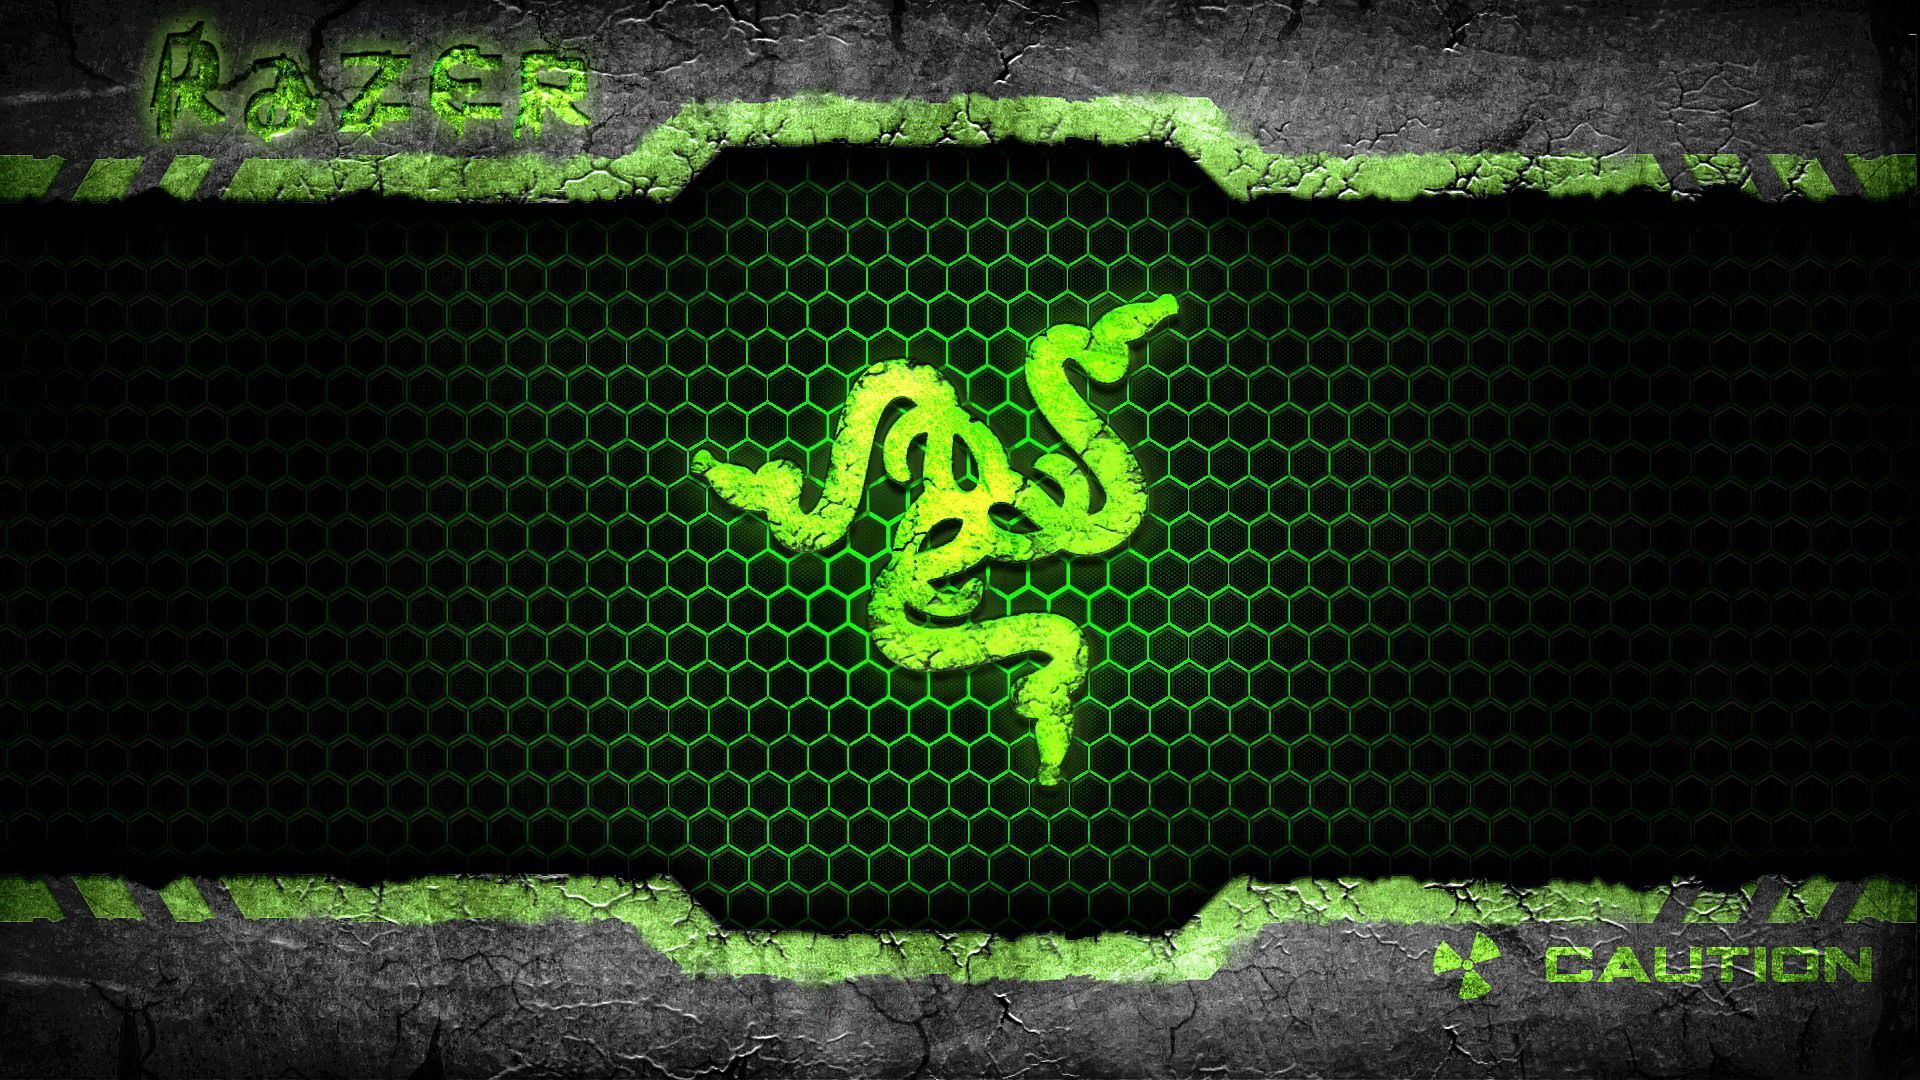 razer logo pictures was taken from other website and it has 1600 x